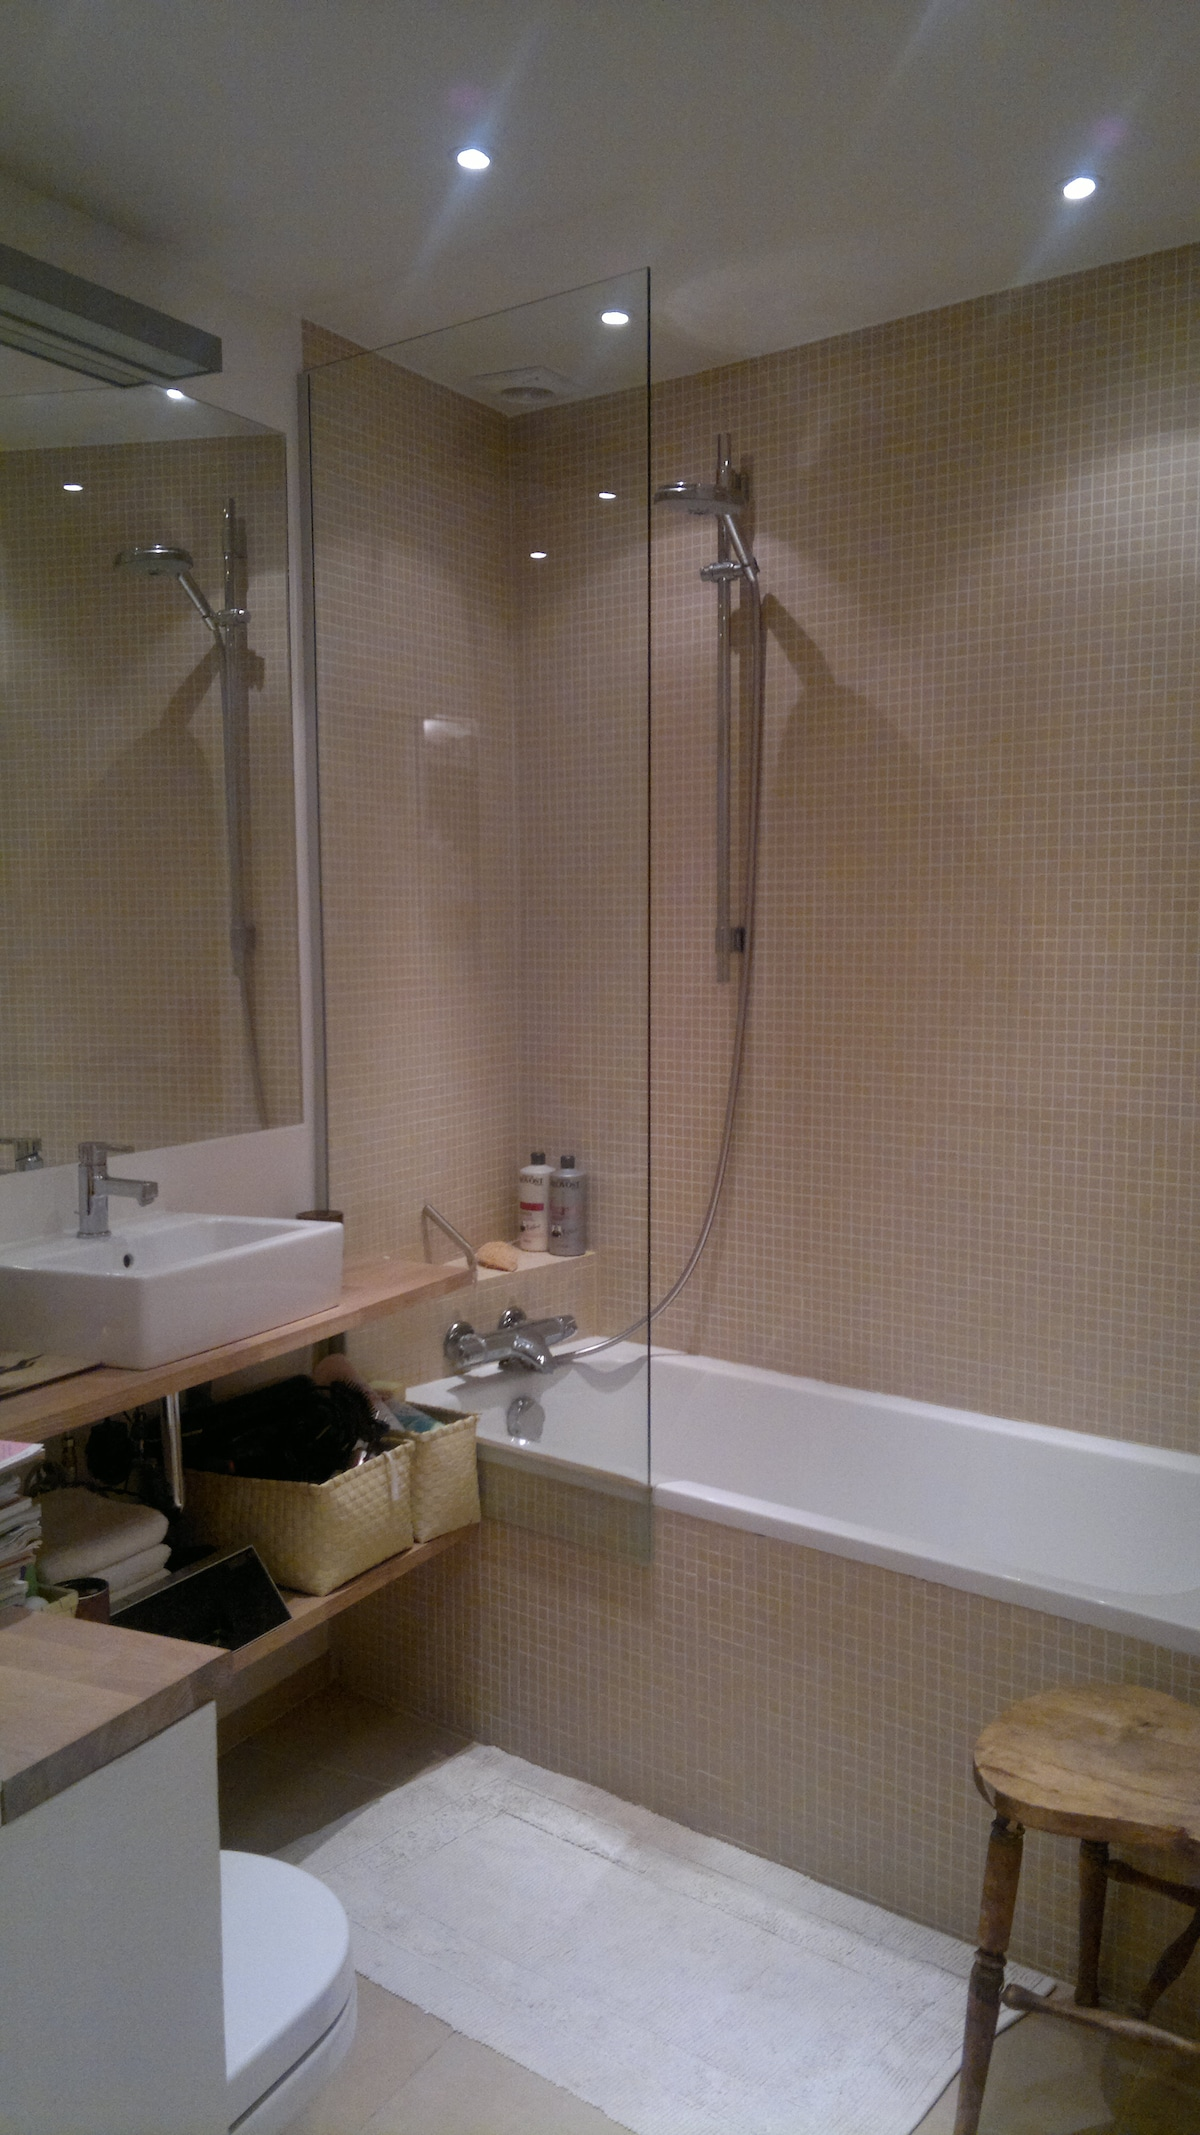 Our beautiful bath room with bath tub, shower, heating in the floor and mirror - all shampoo, conditioner, soft towels etc. provided!